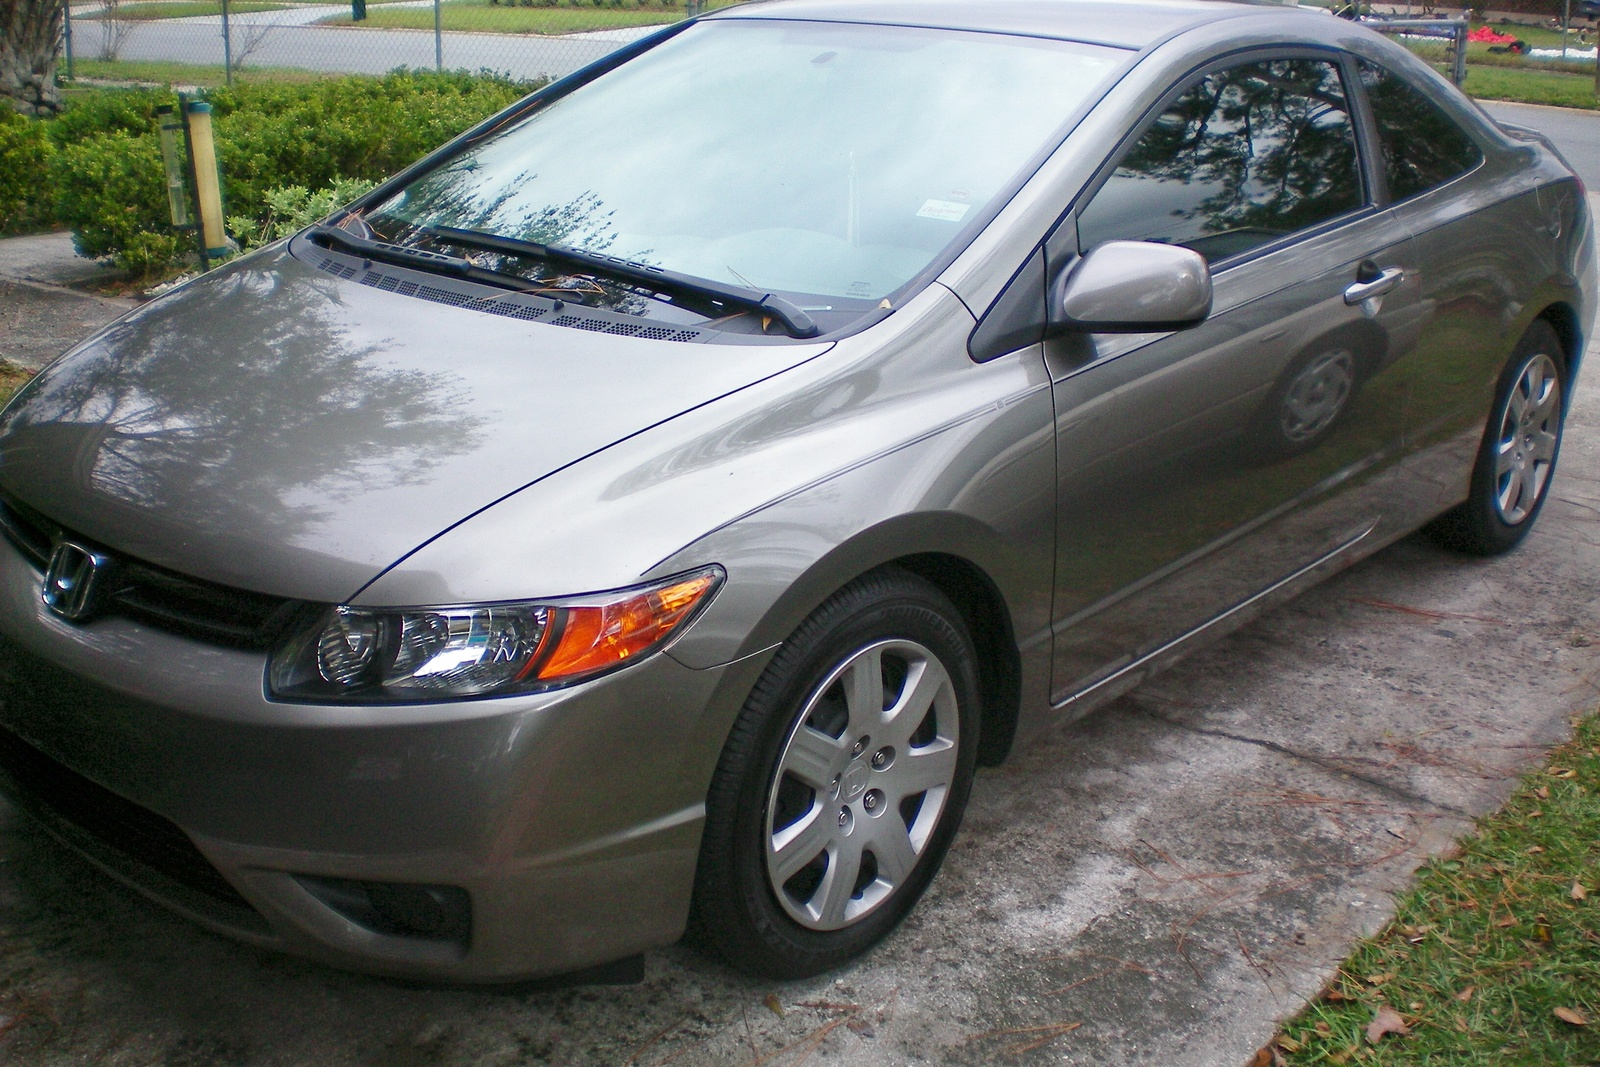 Honda 2006 honda coupe : 2006 Civic Coupe DX Price? - 8th Generation Honda Civic Forum